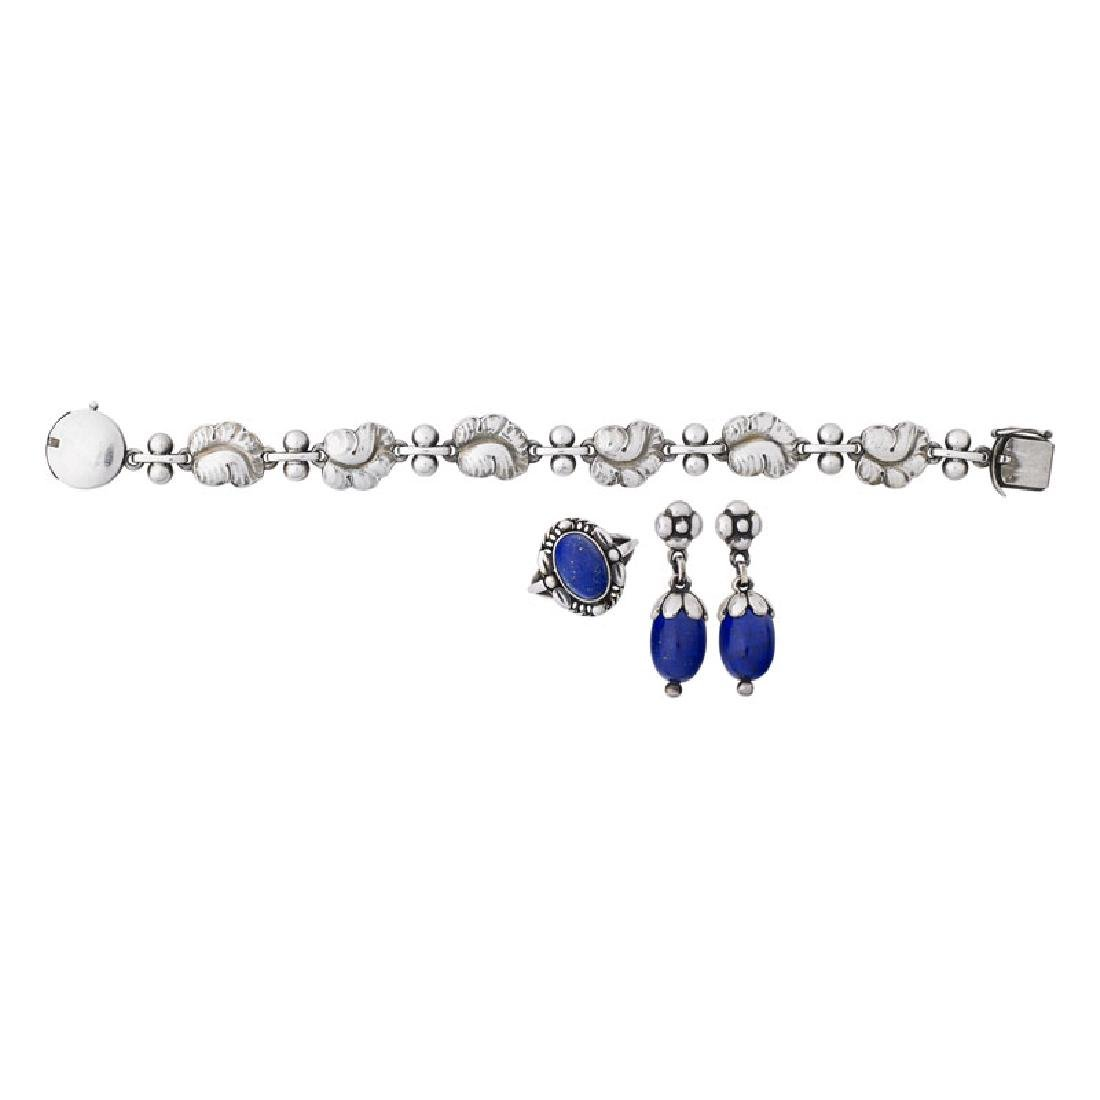 GEORG JENSEN SILVER ASSEMBLED SUITE WITH LAPIS